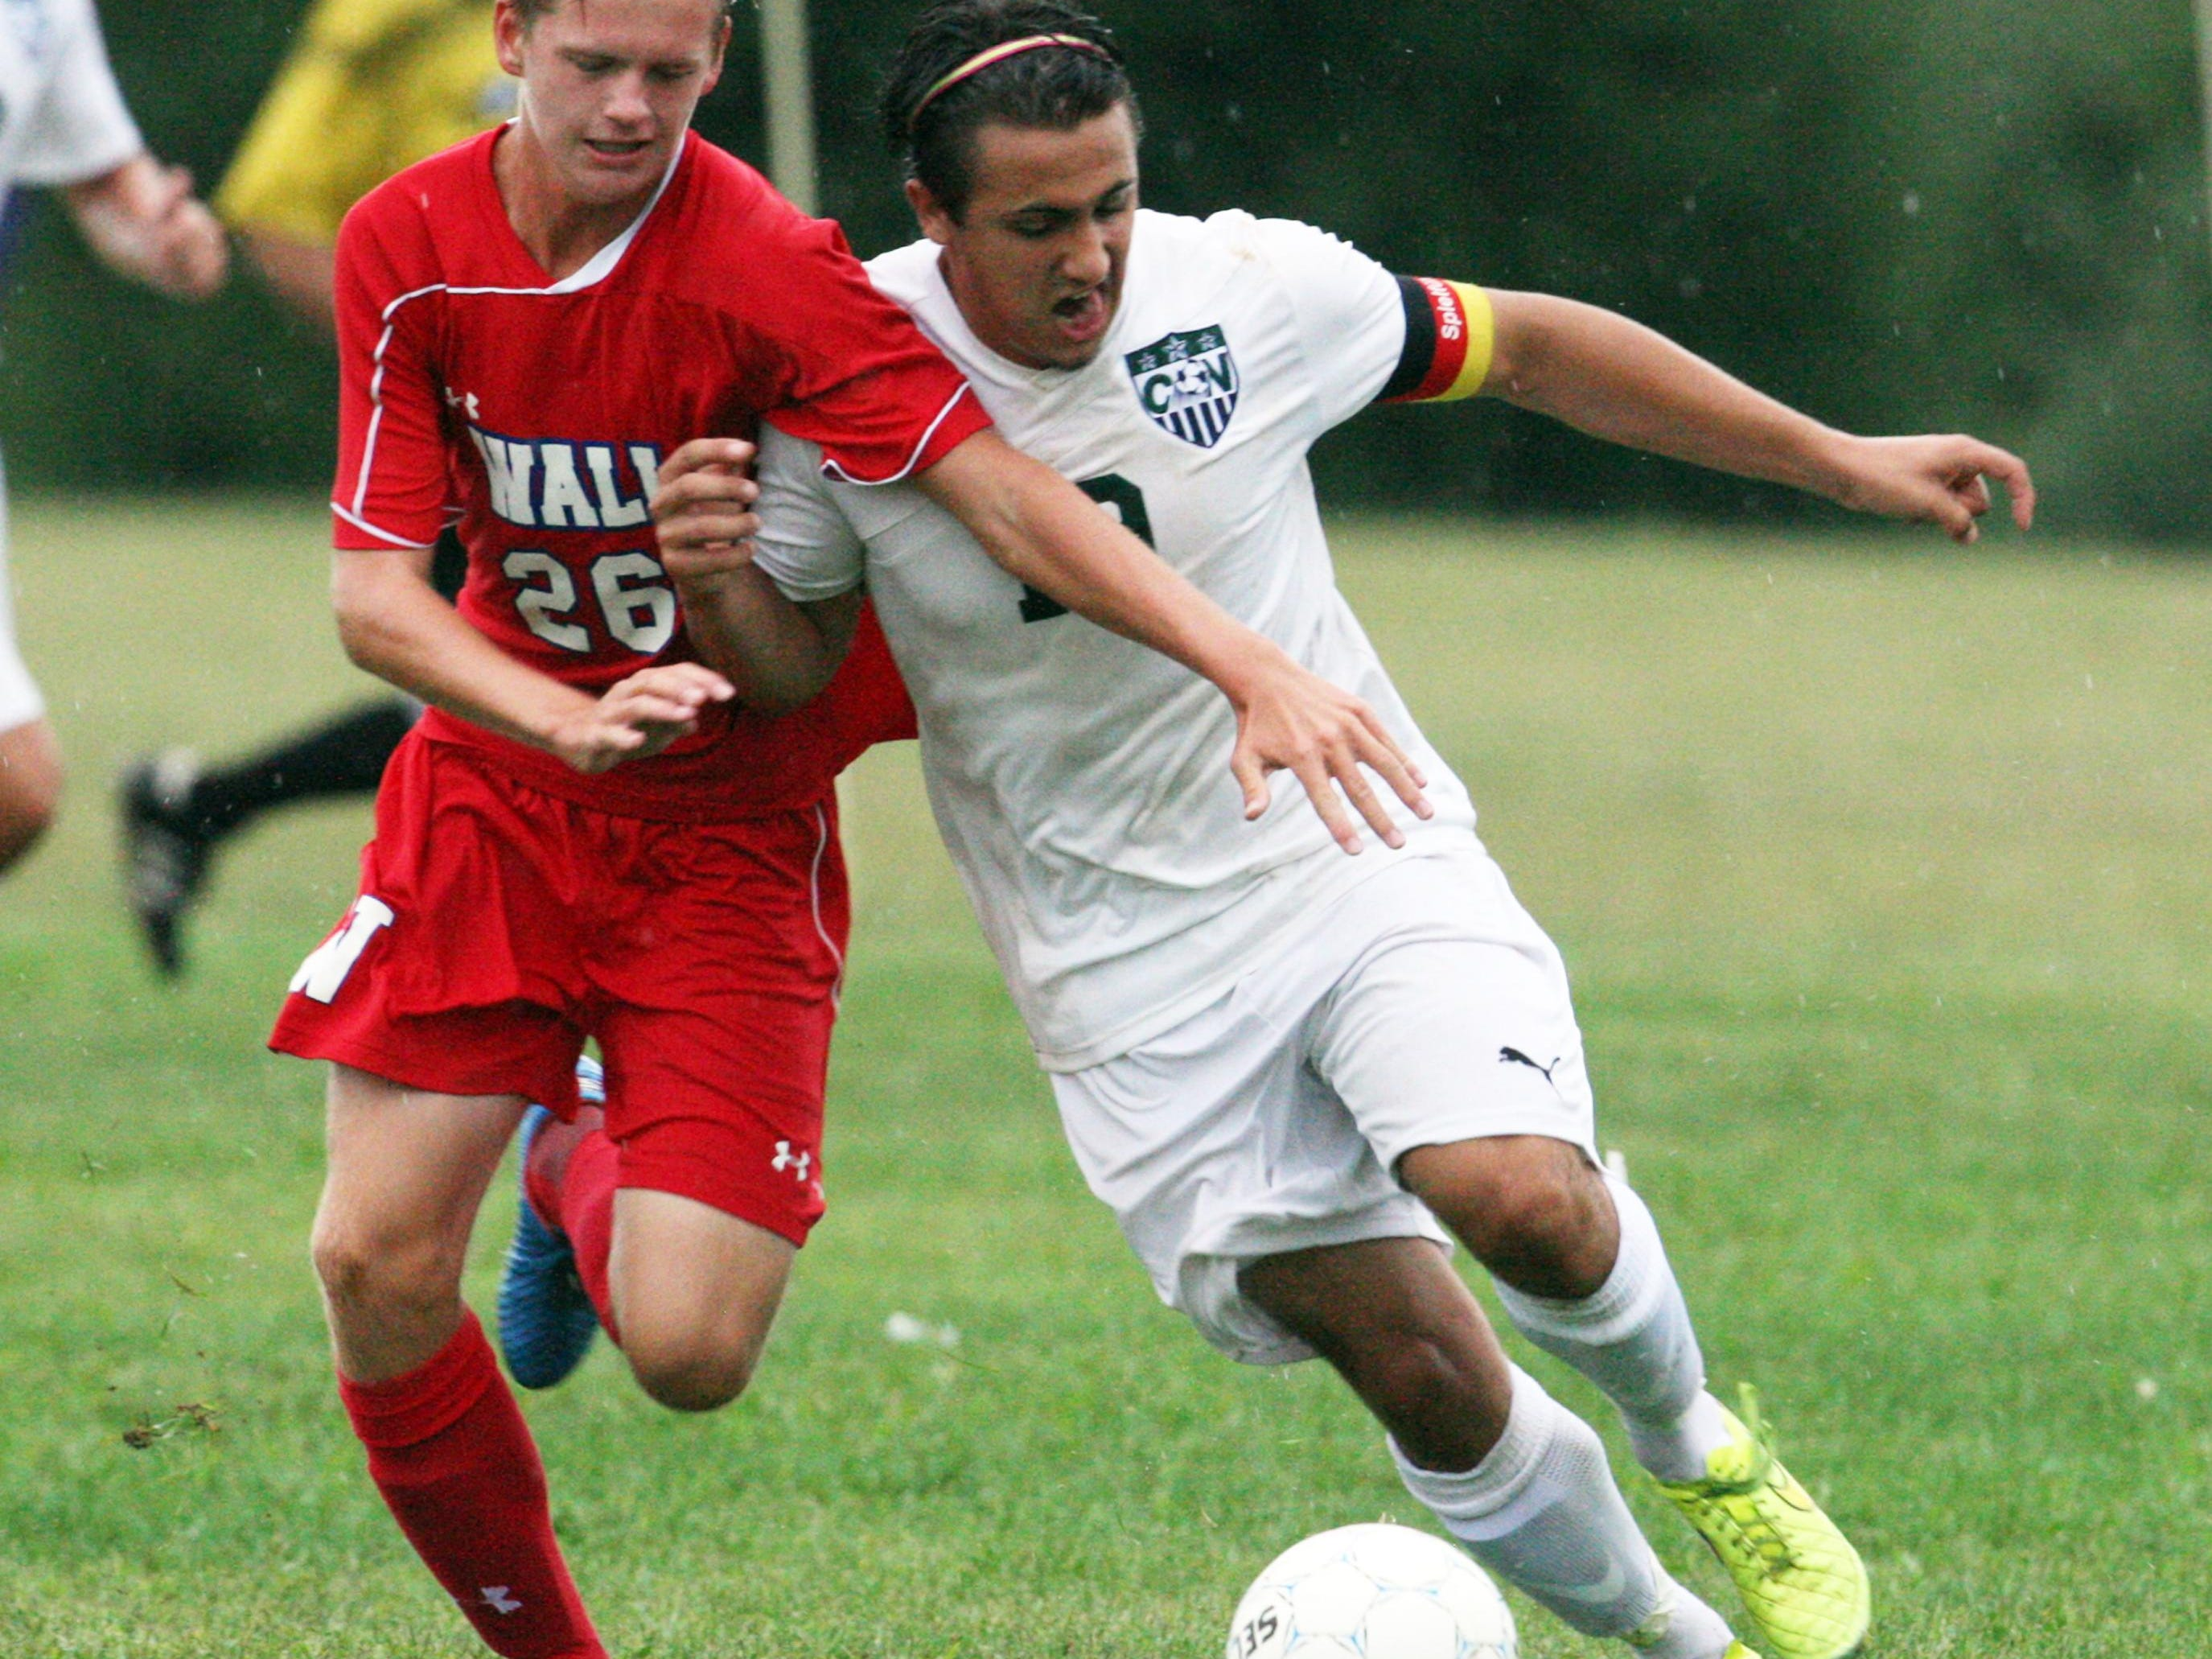 Wall High School 's boys soccer team traveled to Colts Neck to take on Colts Neck High School in a boys varsity soccer game on Thursday September 10,2015. Here Wall's # 26-Jeremy Thompson (left) battles with Colts Neck's # 19 Robert Berdel (right) during the 1st half of play.